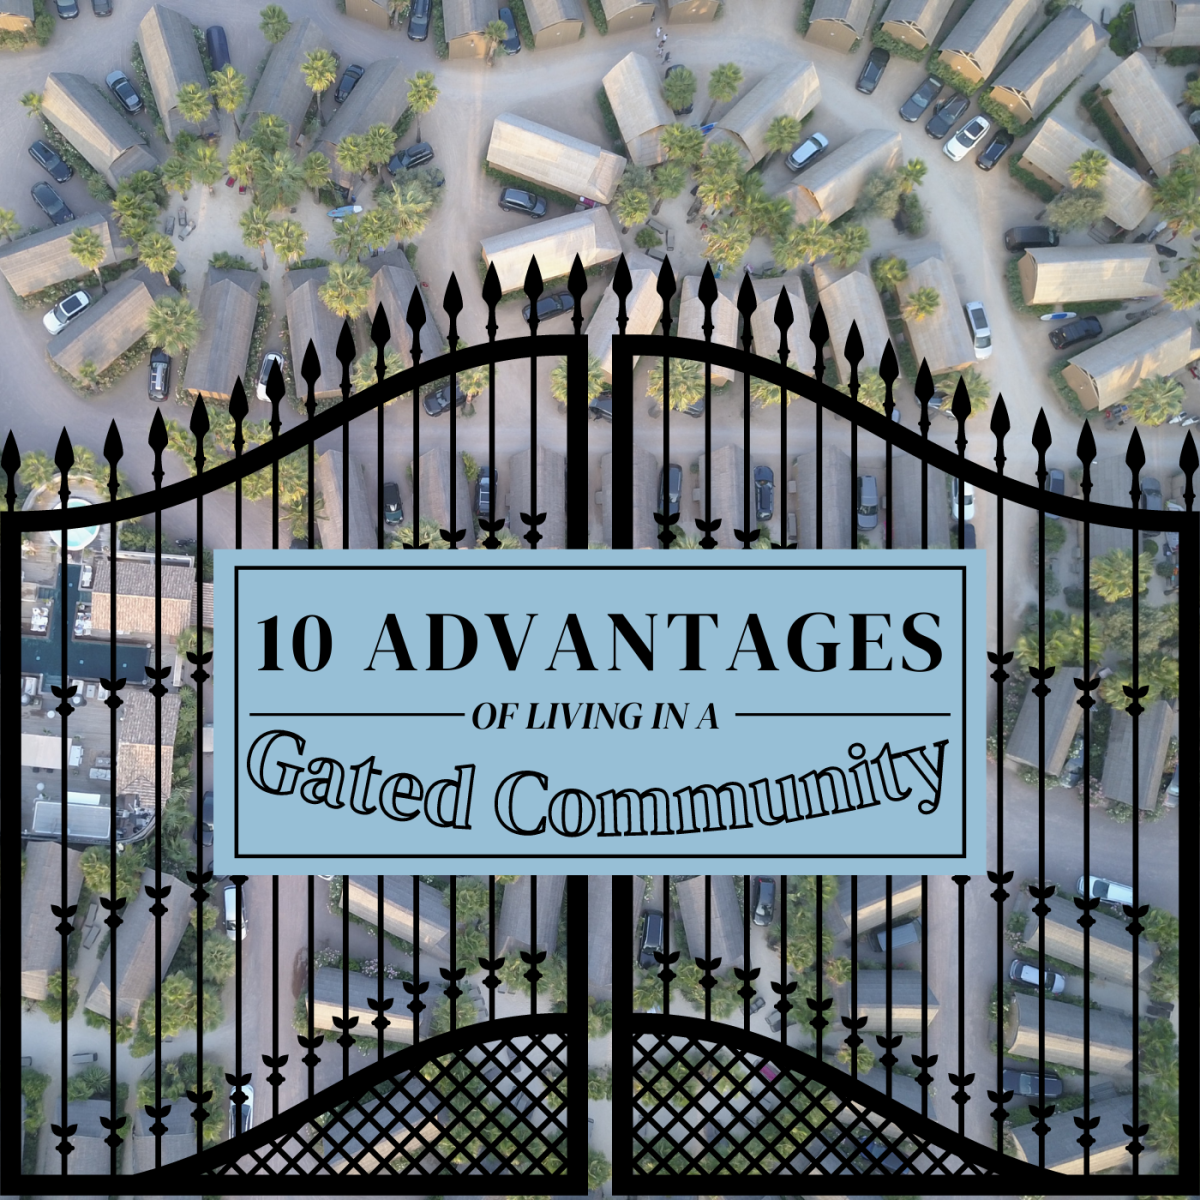 While gated-community living doesn't work for everyone, it does come with a number of advantages.